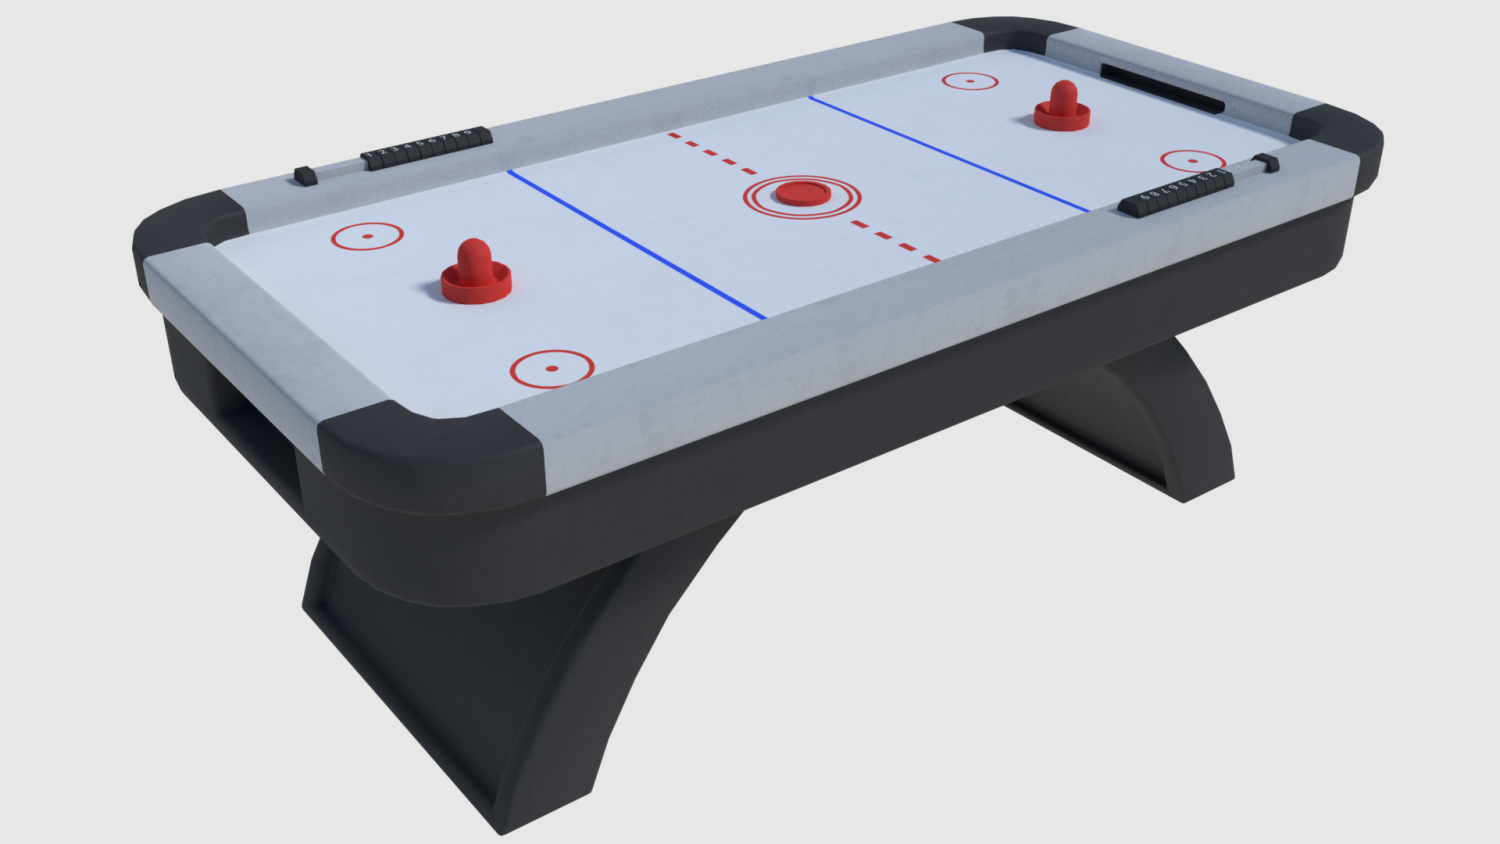 3d model modular ice rink social networking projects security light air hockey game ready 3d model in sports equipment 3dexport air hockey game ready 3d model c4d max obj fbx ma lwo 3ds 3dm stl 1637719 o 3dmodel air hockey greentooth Image collections